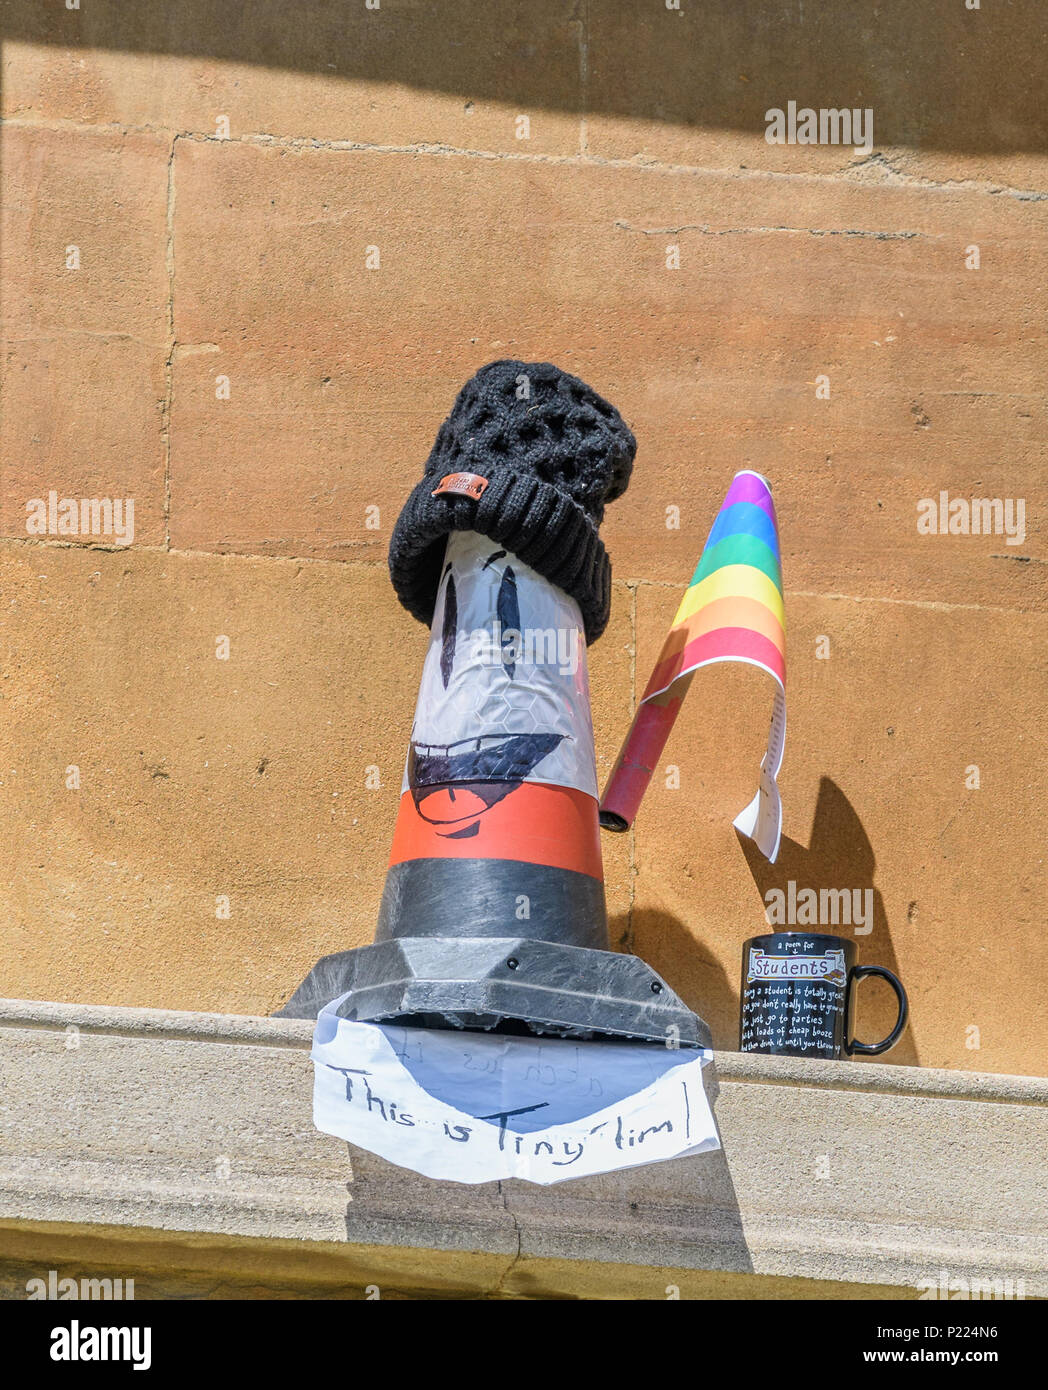 An image Tiny Tim, and a mug praising the indolence of student life, on a ledge of the Radcliffe Camera Bodleian library at the university of Oxford,  - Stock Image